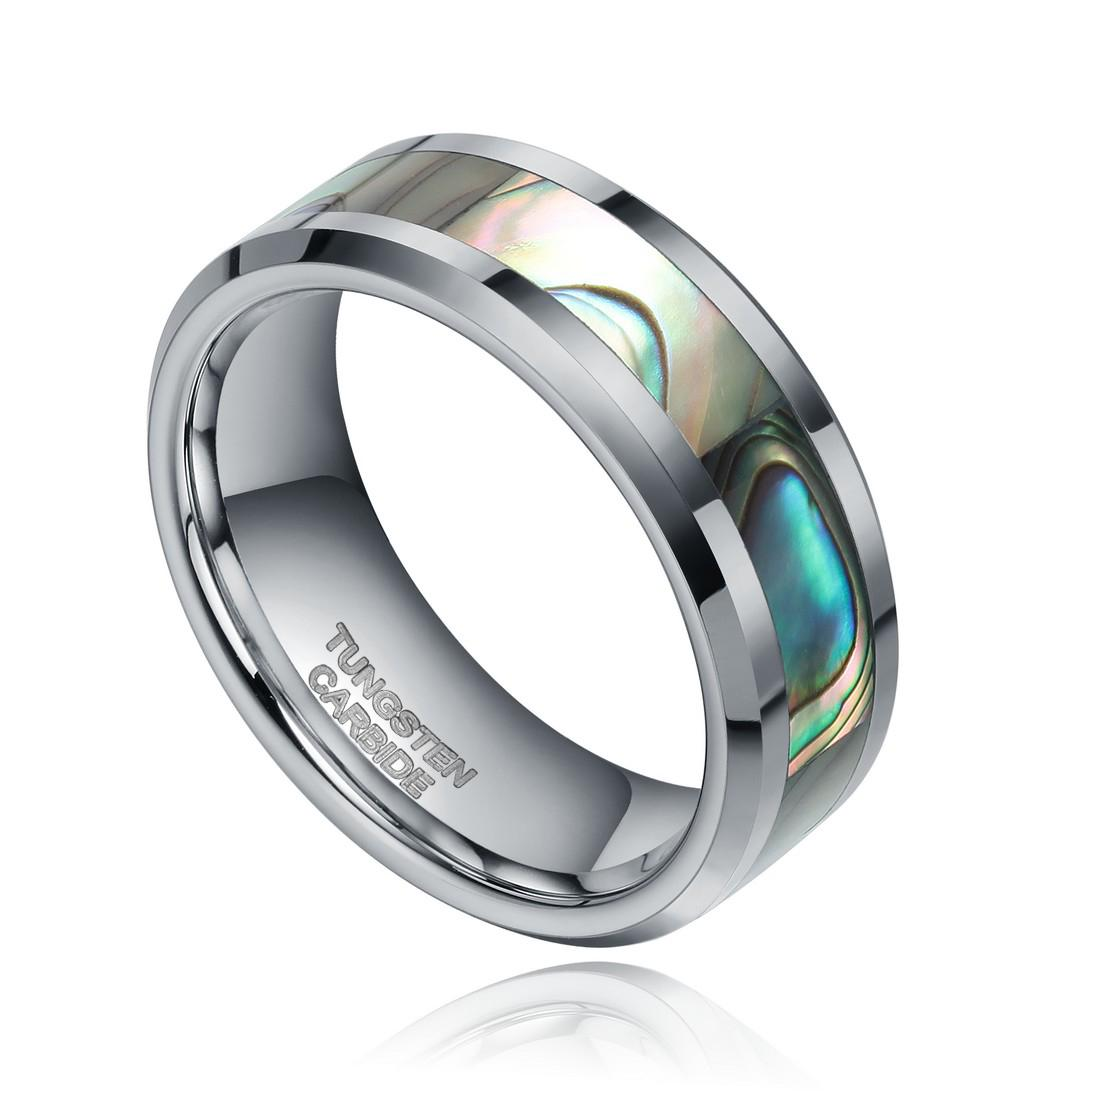 68mm Men Tungsten Ring Wedding Band Engagement Ring Silver with